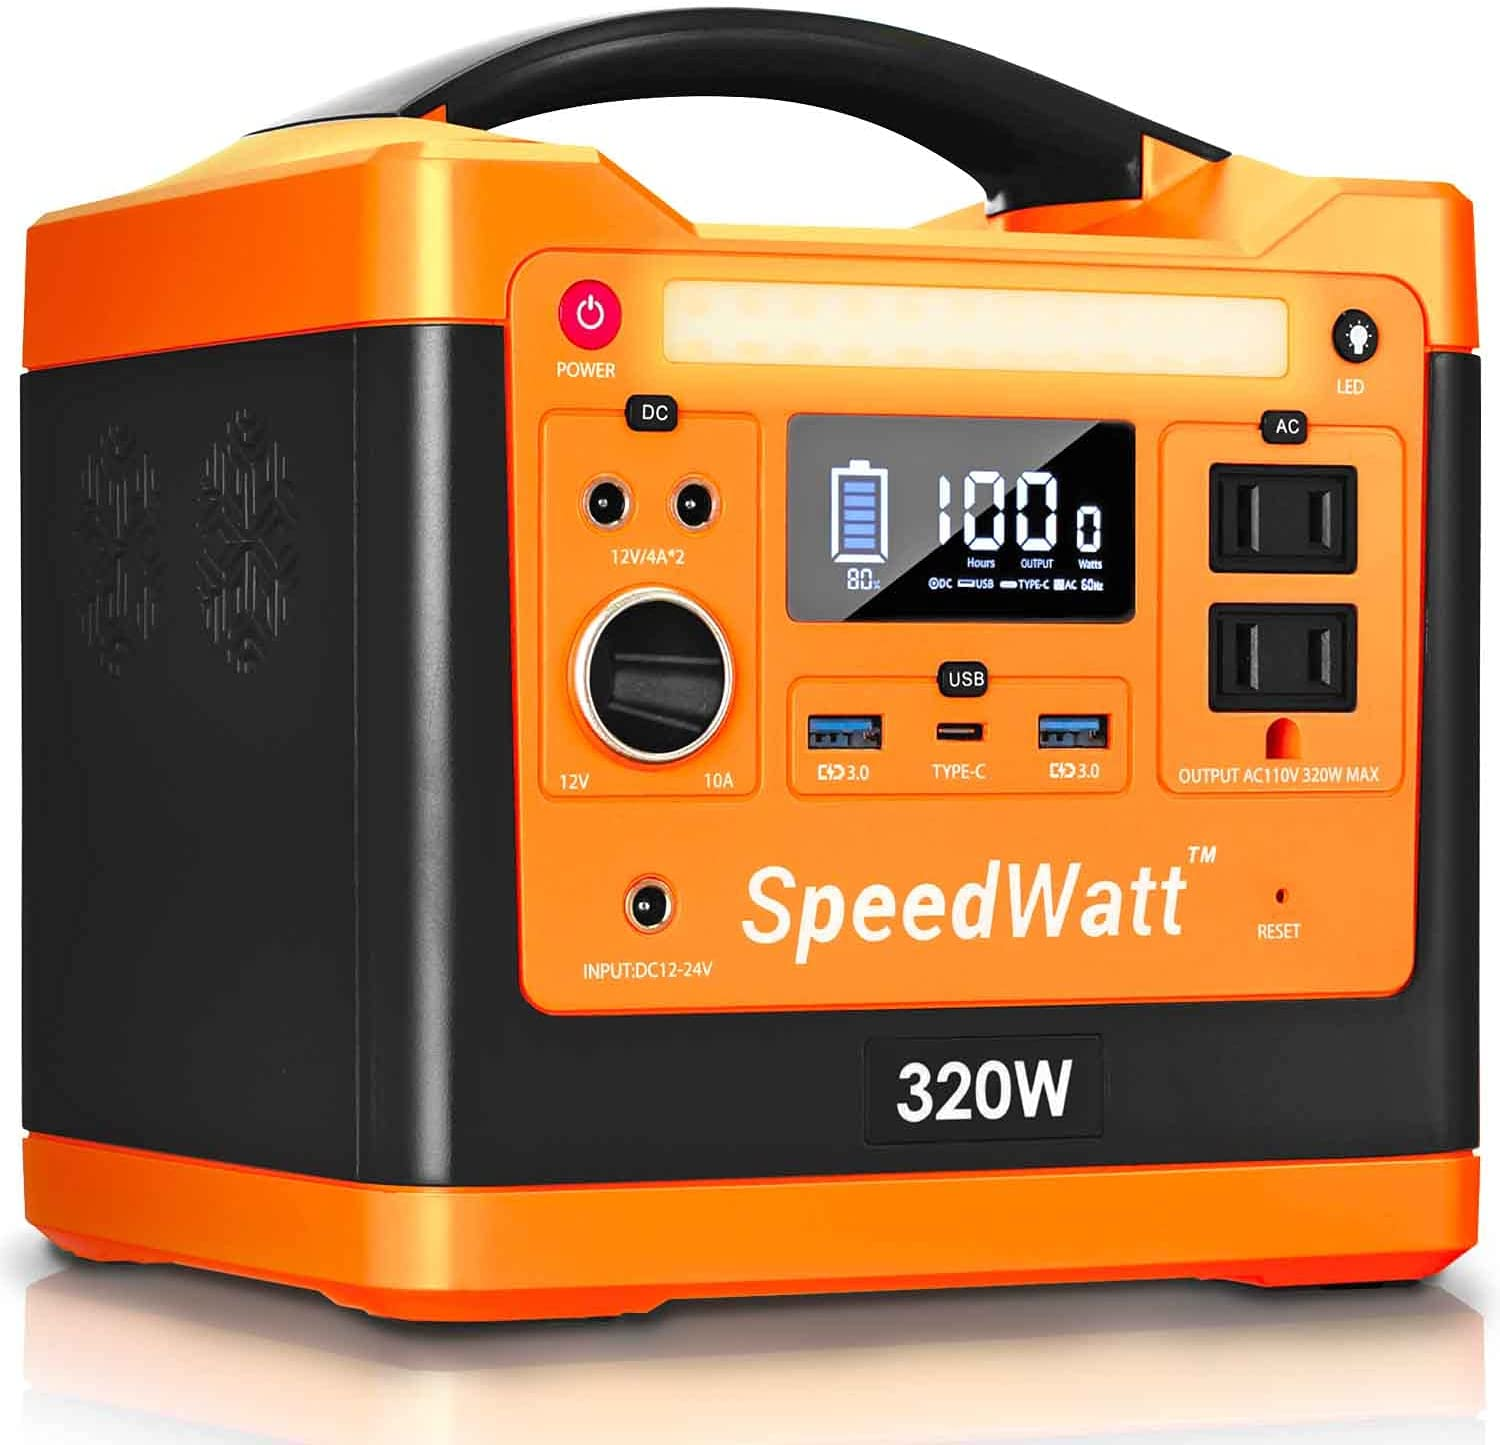 SpeedWatt Neon Orange Portable Power Station, 298 Wh / 96000 mAh Compact Lithium Battery for Memorial Day Weekends Outdoors Camping, 300W Output: 110V AC USB Type-C 60W PD (Solar Panel Not Included)